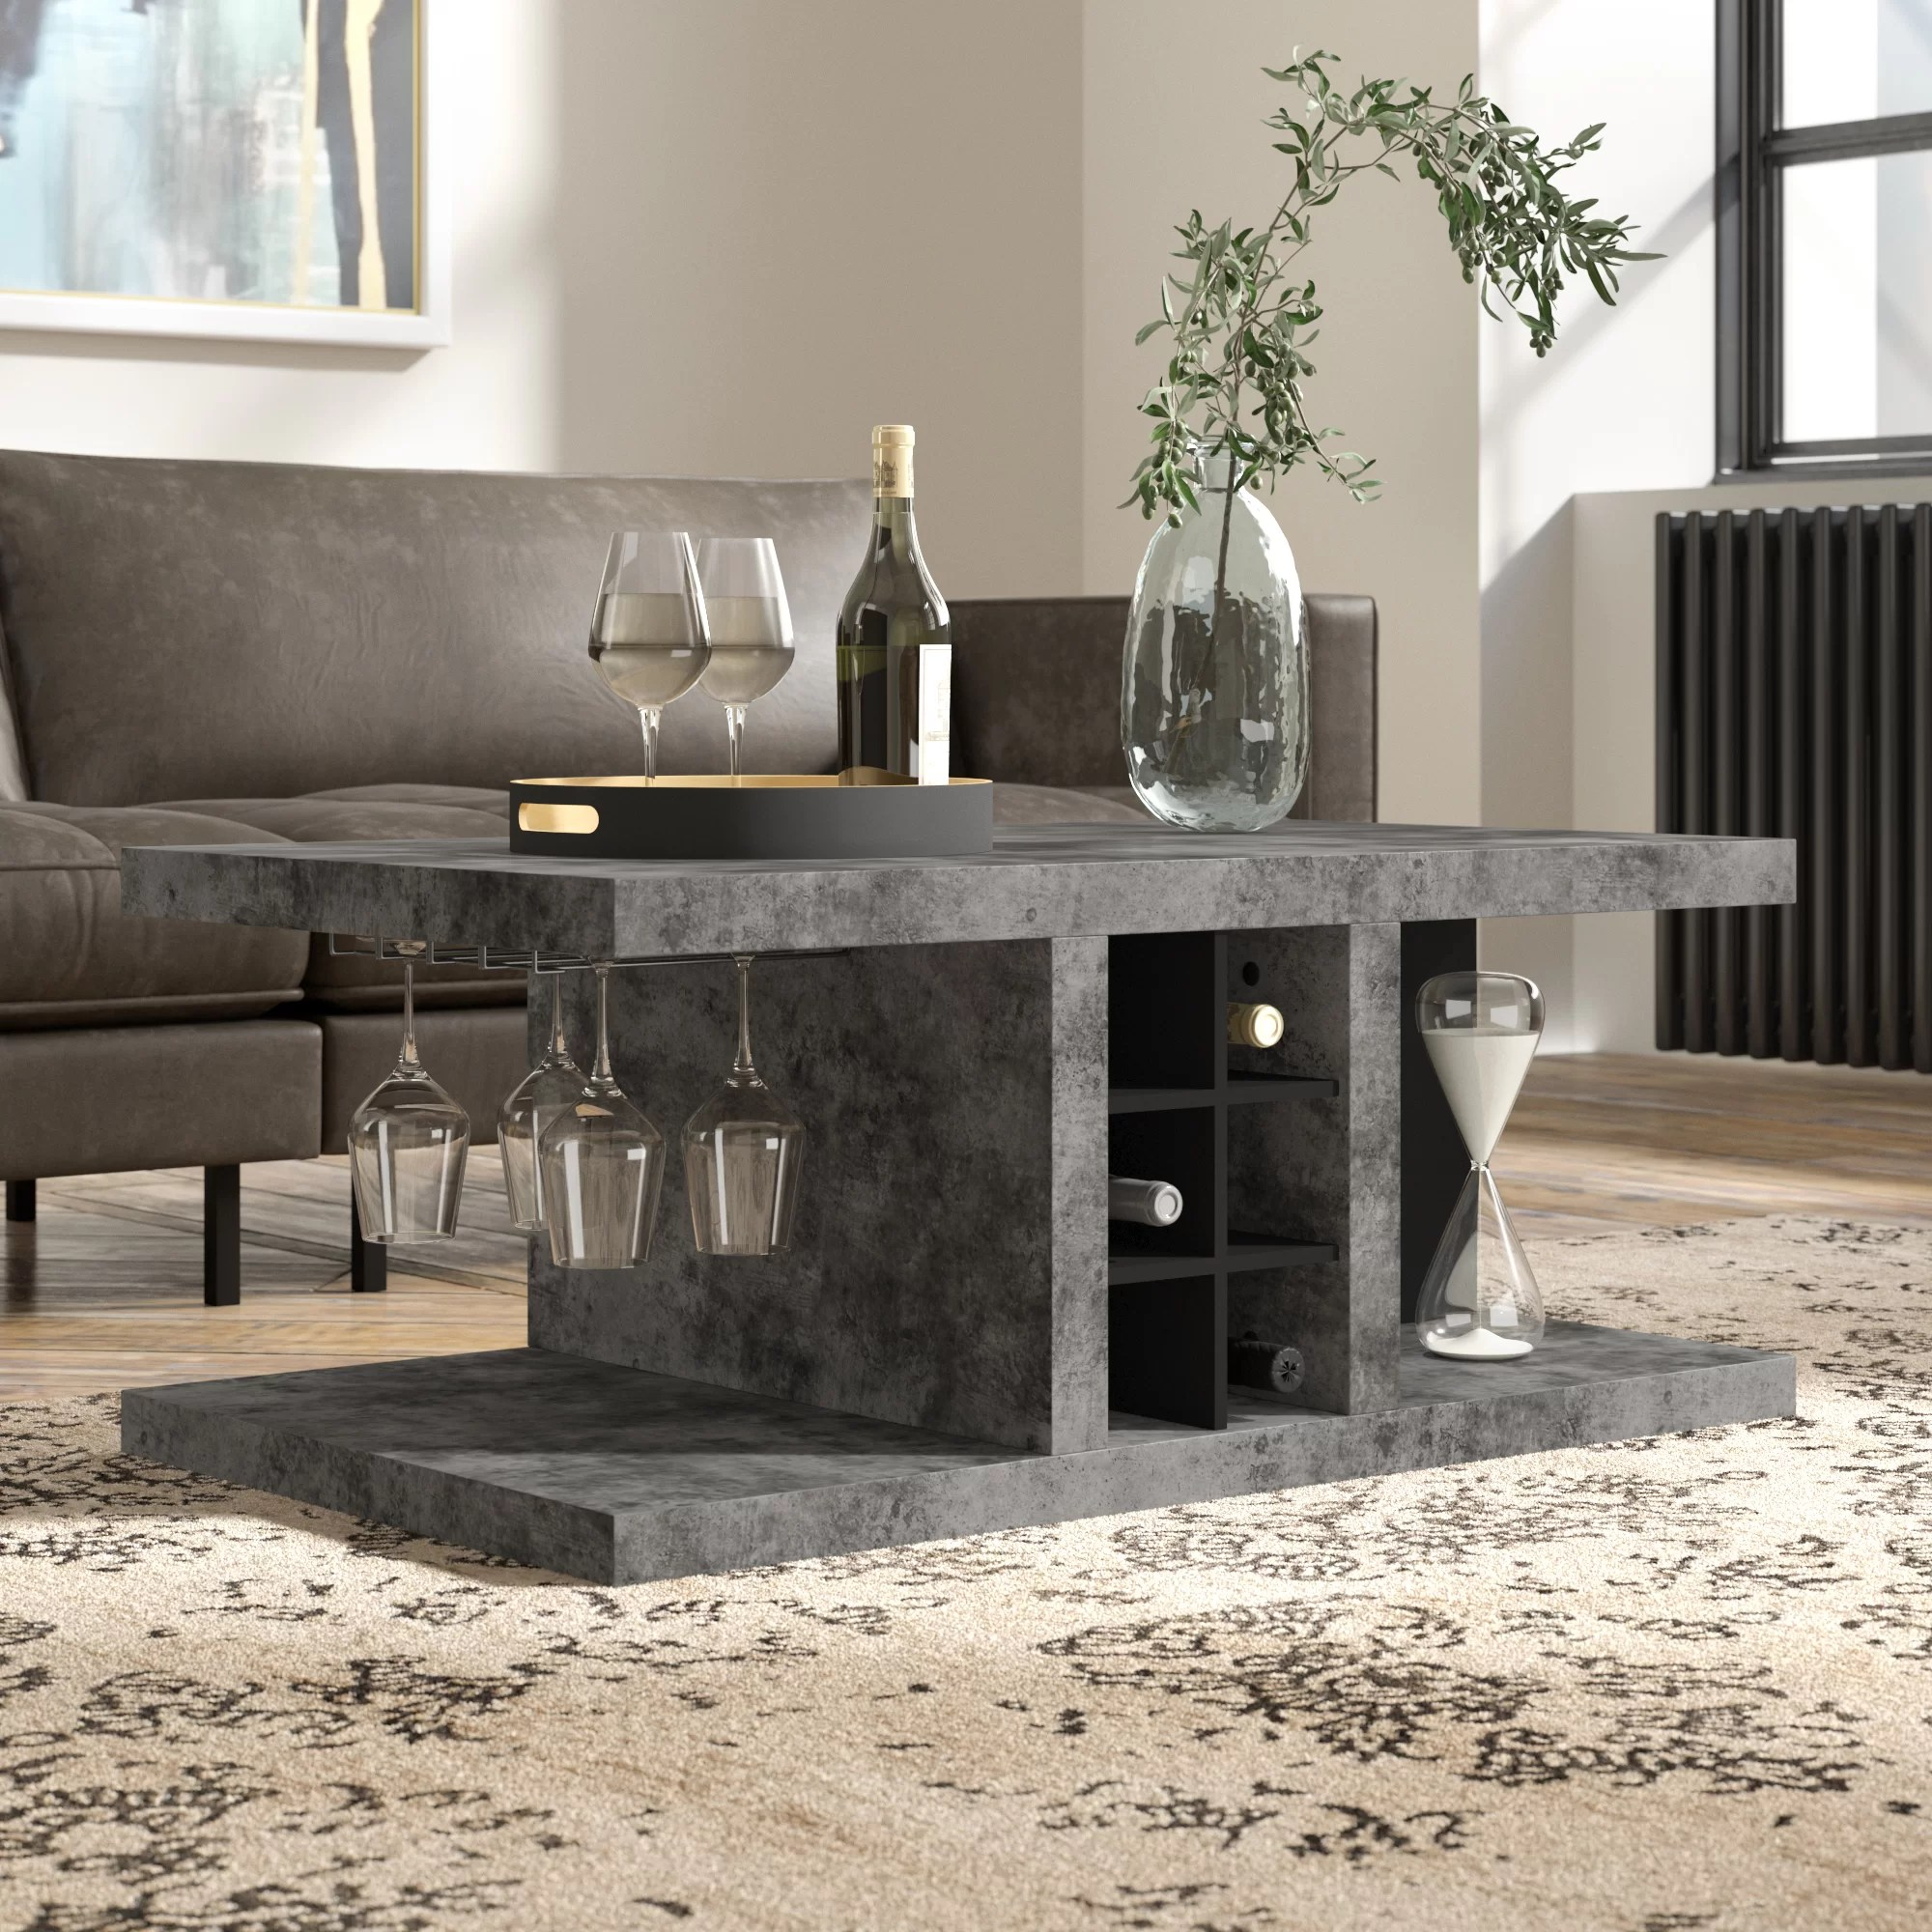 Couchtisch Space Hekimhan Coffee Table